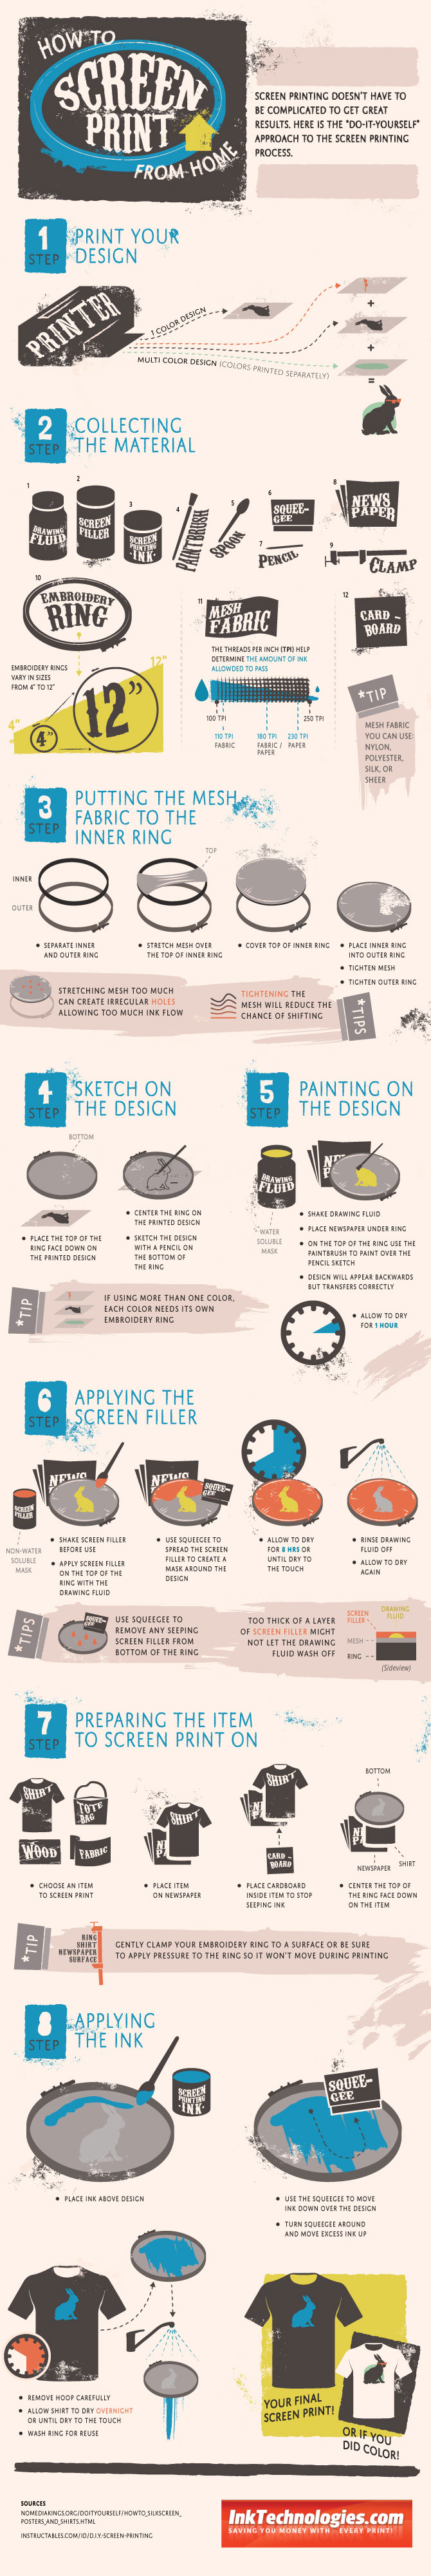 Screen printing in 8 easy steps